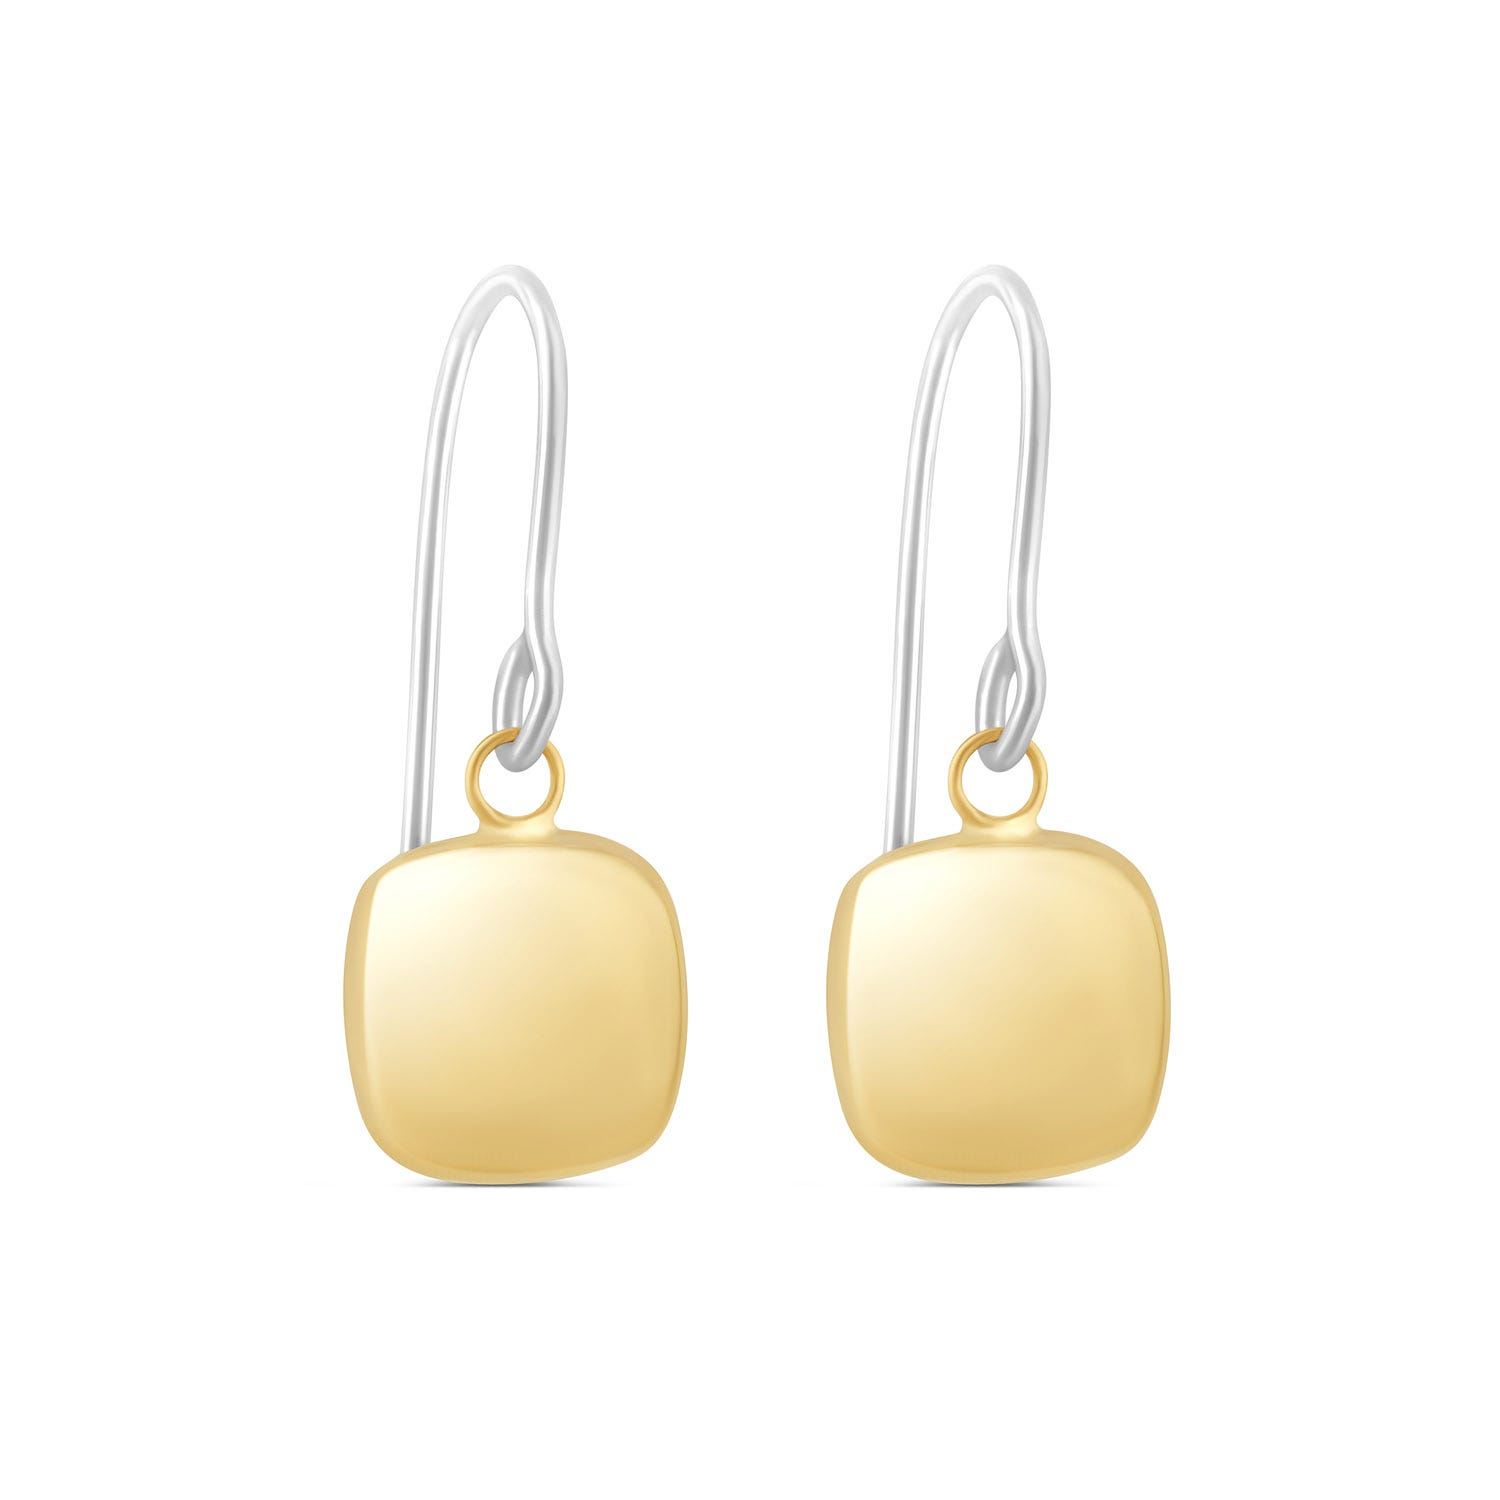 9ct Yellow and White Gold Square Drop Earrings